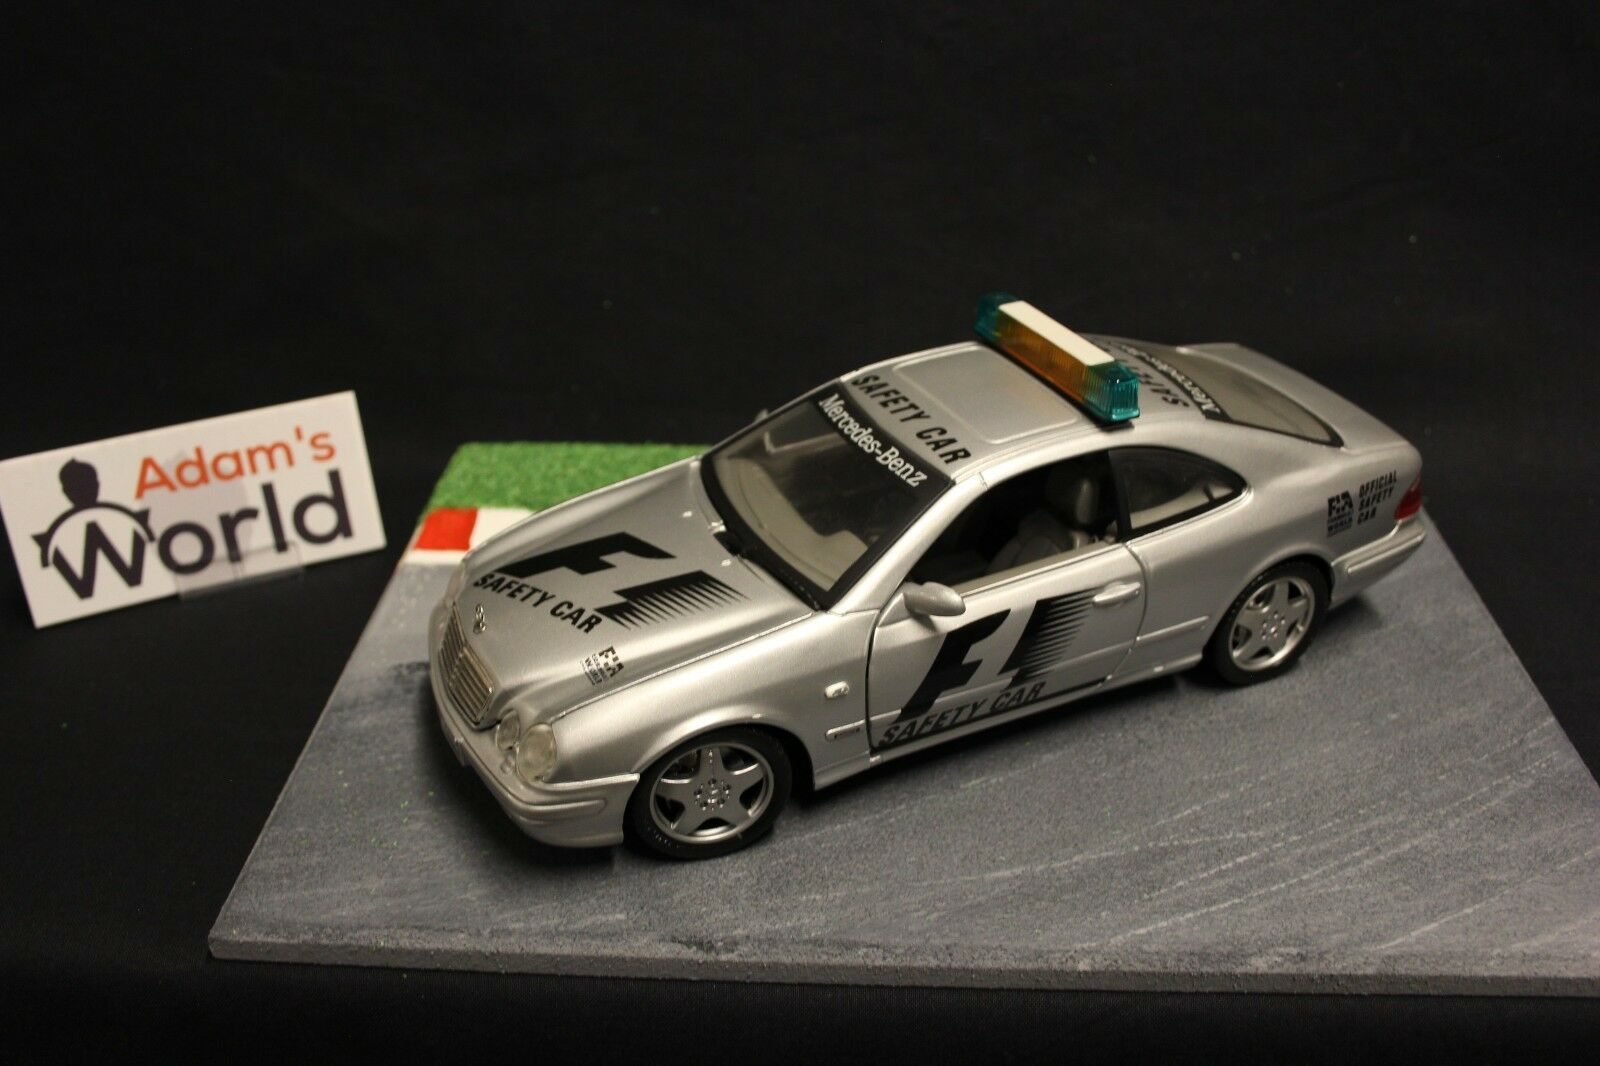 Anson Mercedes-Benz CLK 1 18 Formula 1 Safety Car (F1NB)